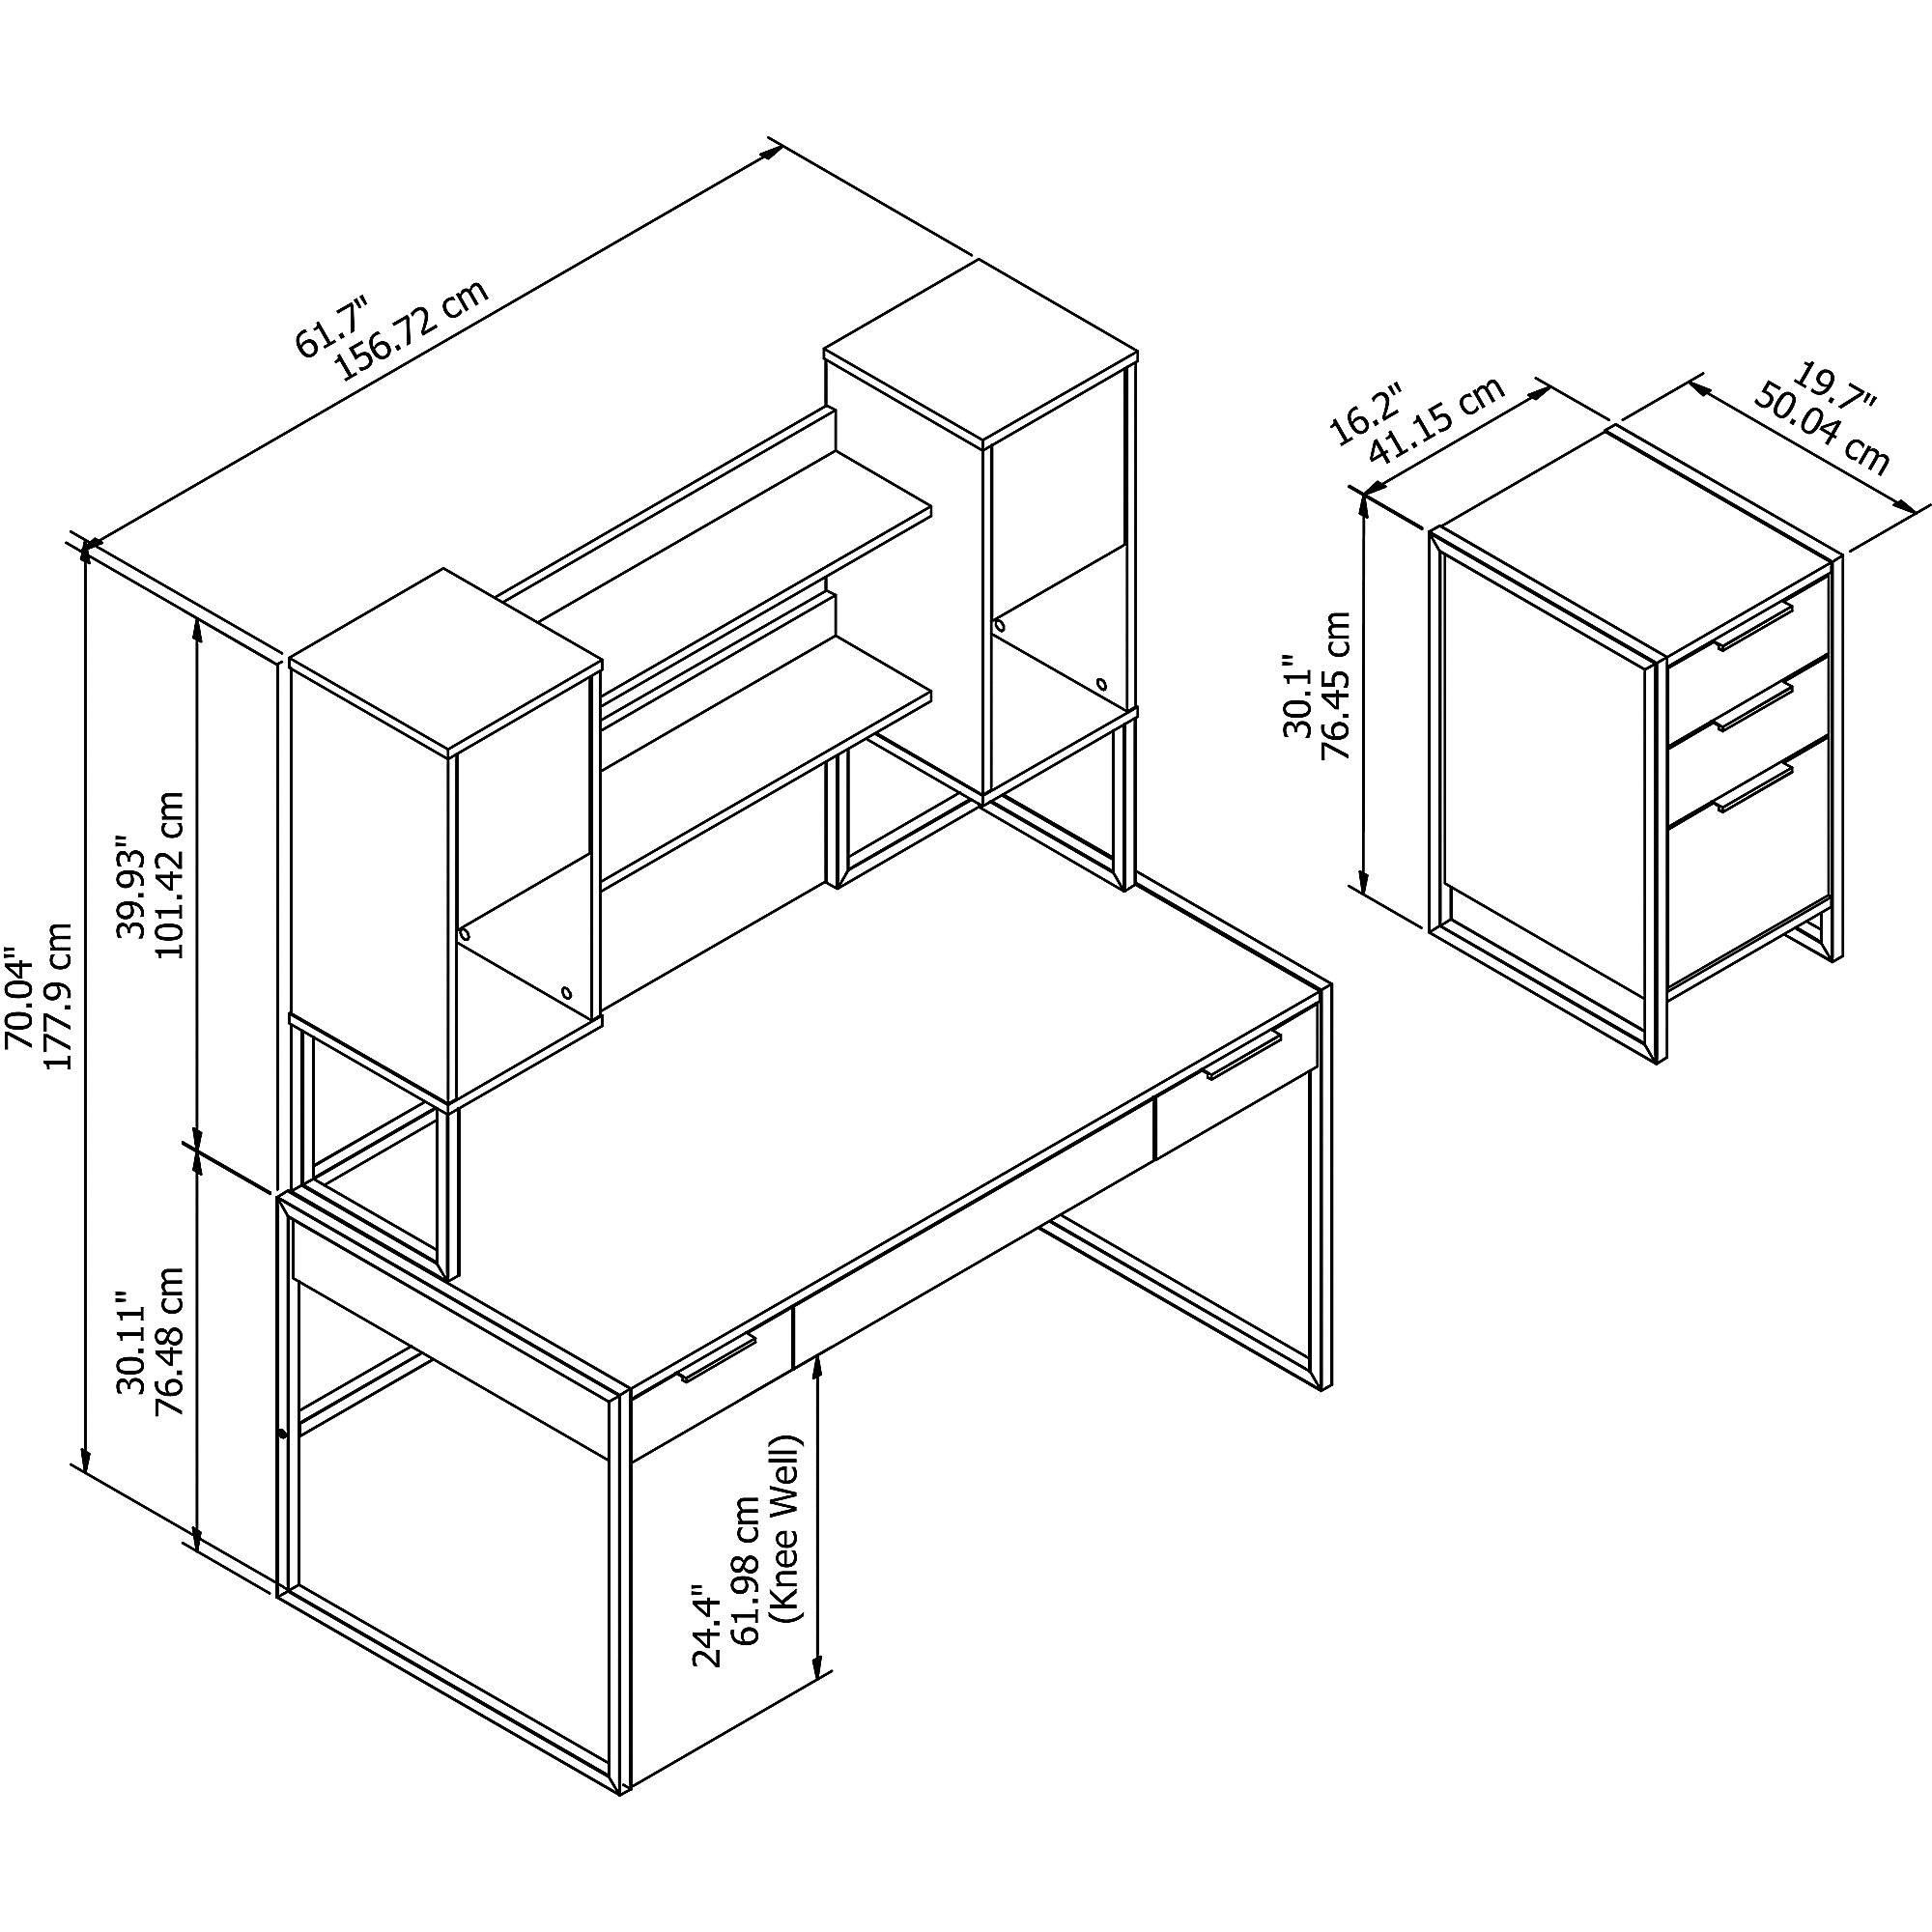 kathy ireland atria components and dimensions